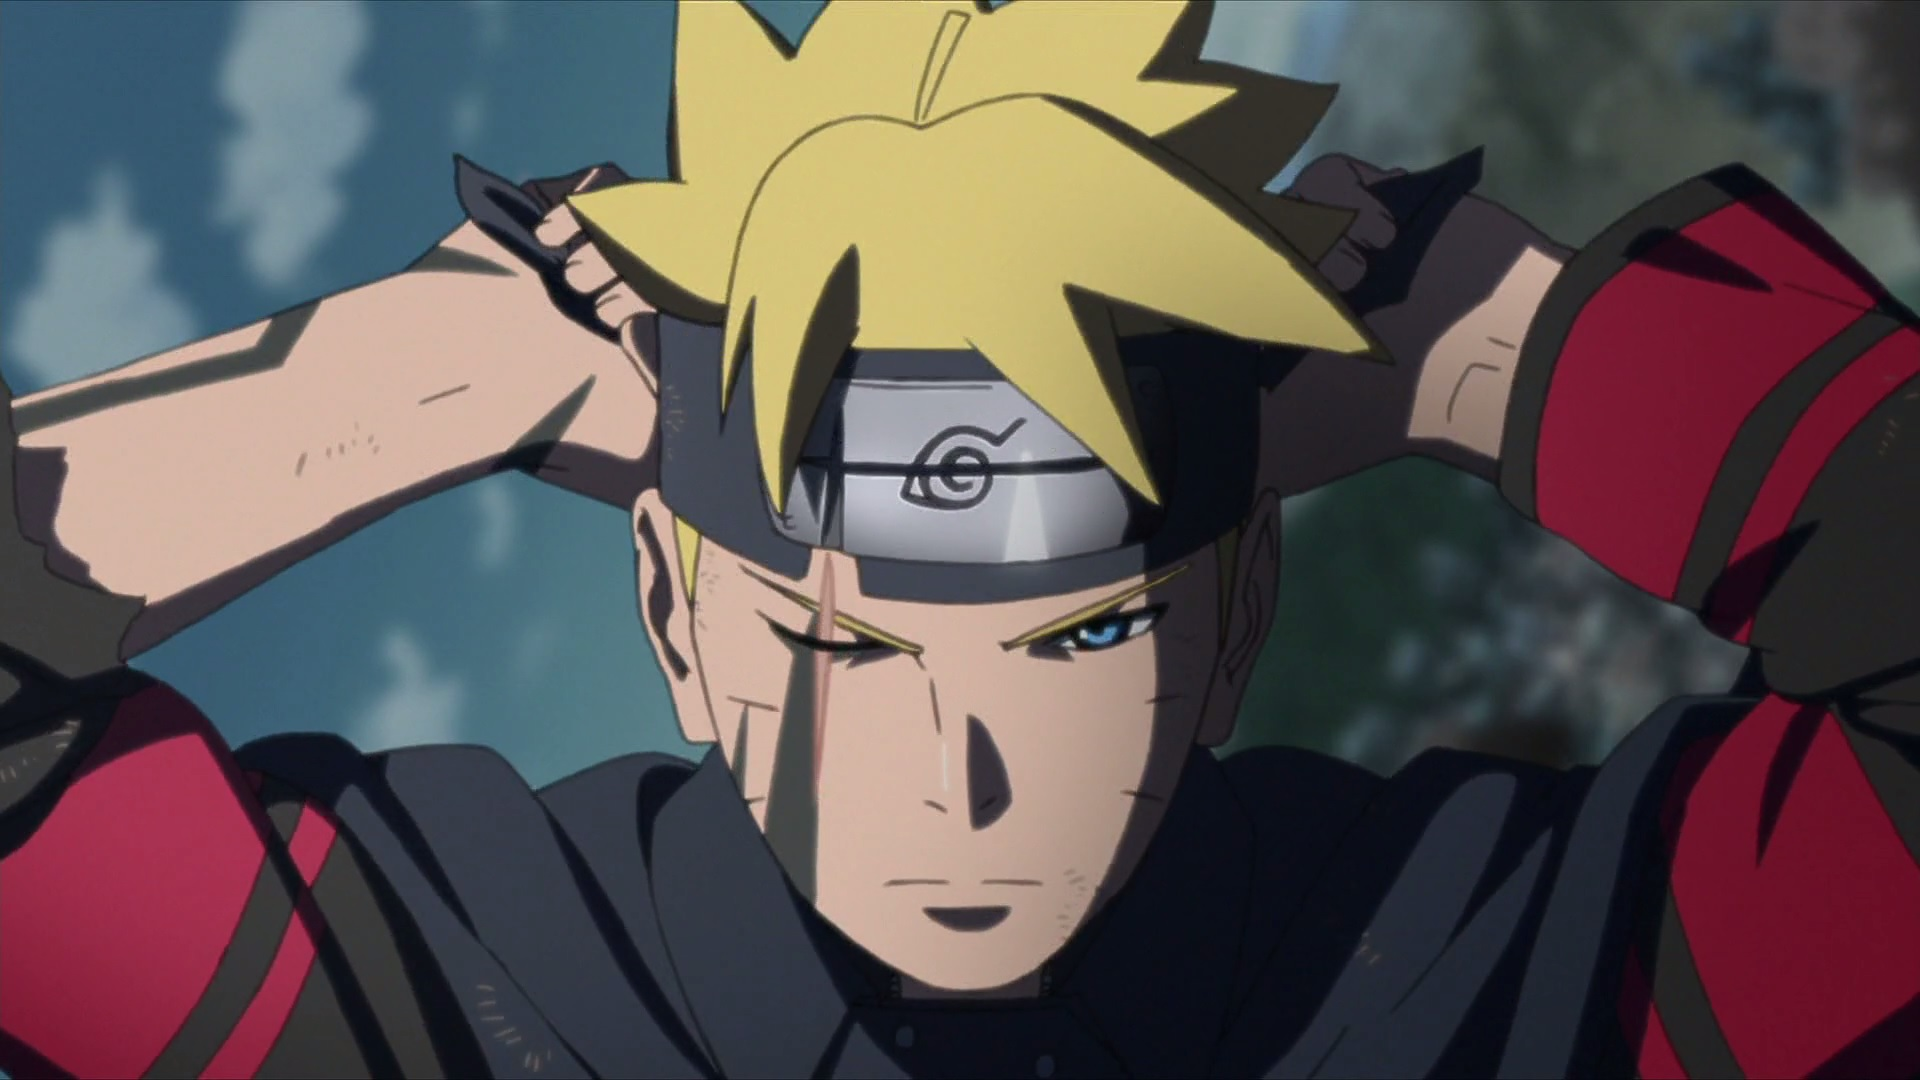 Boruto Wears Leaf Headband Daily Anime Art